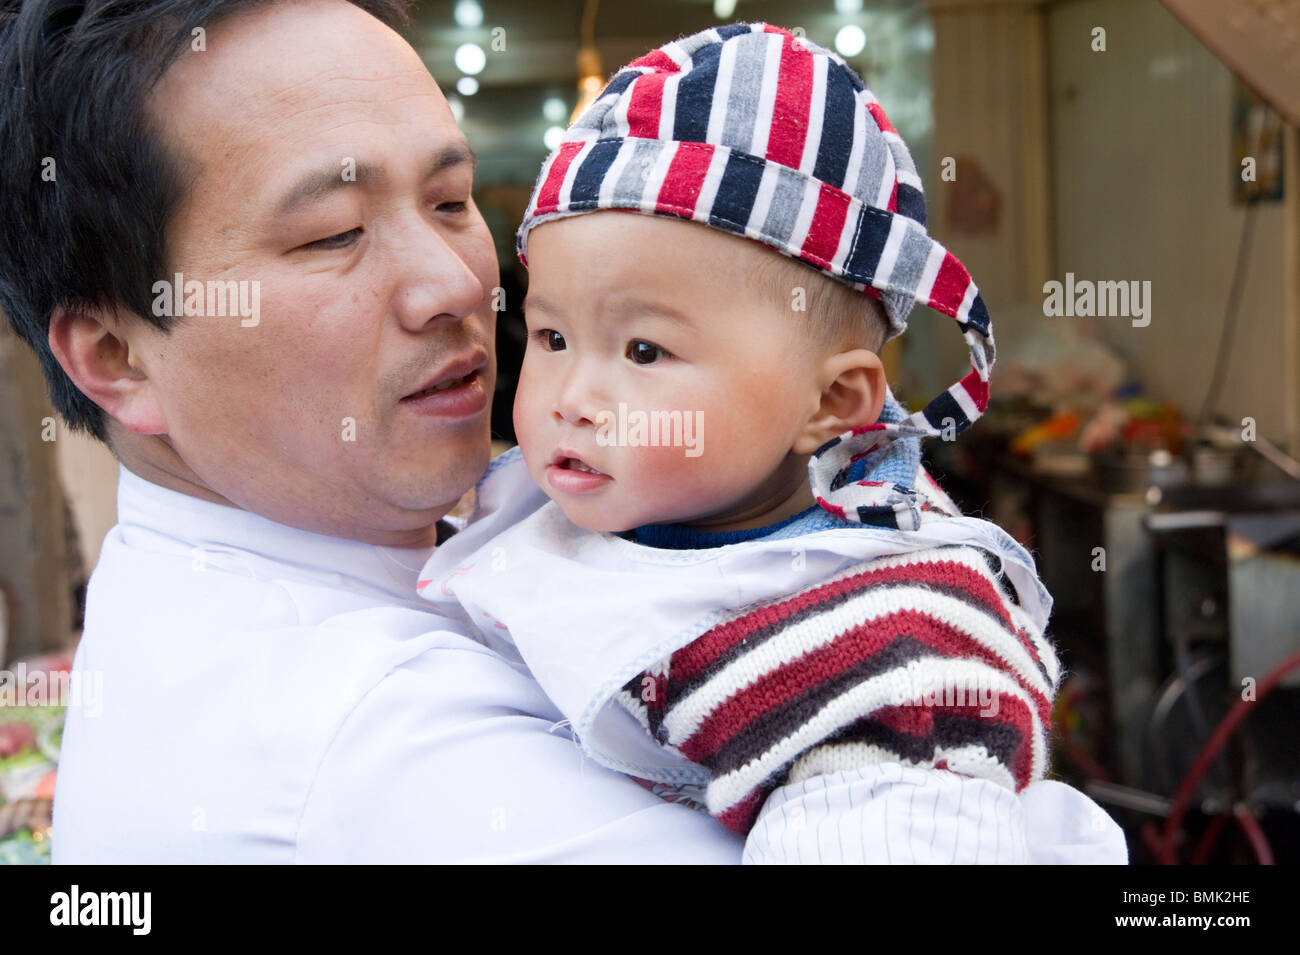 Father and baby, Shanghai, China - Stock Image